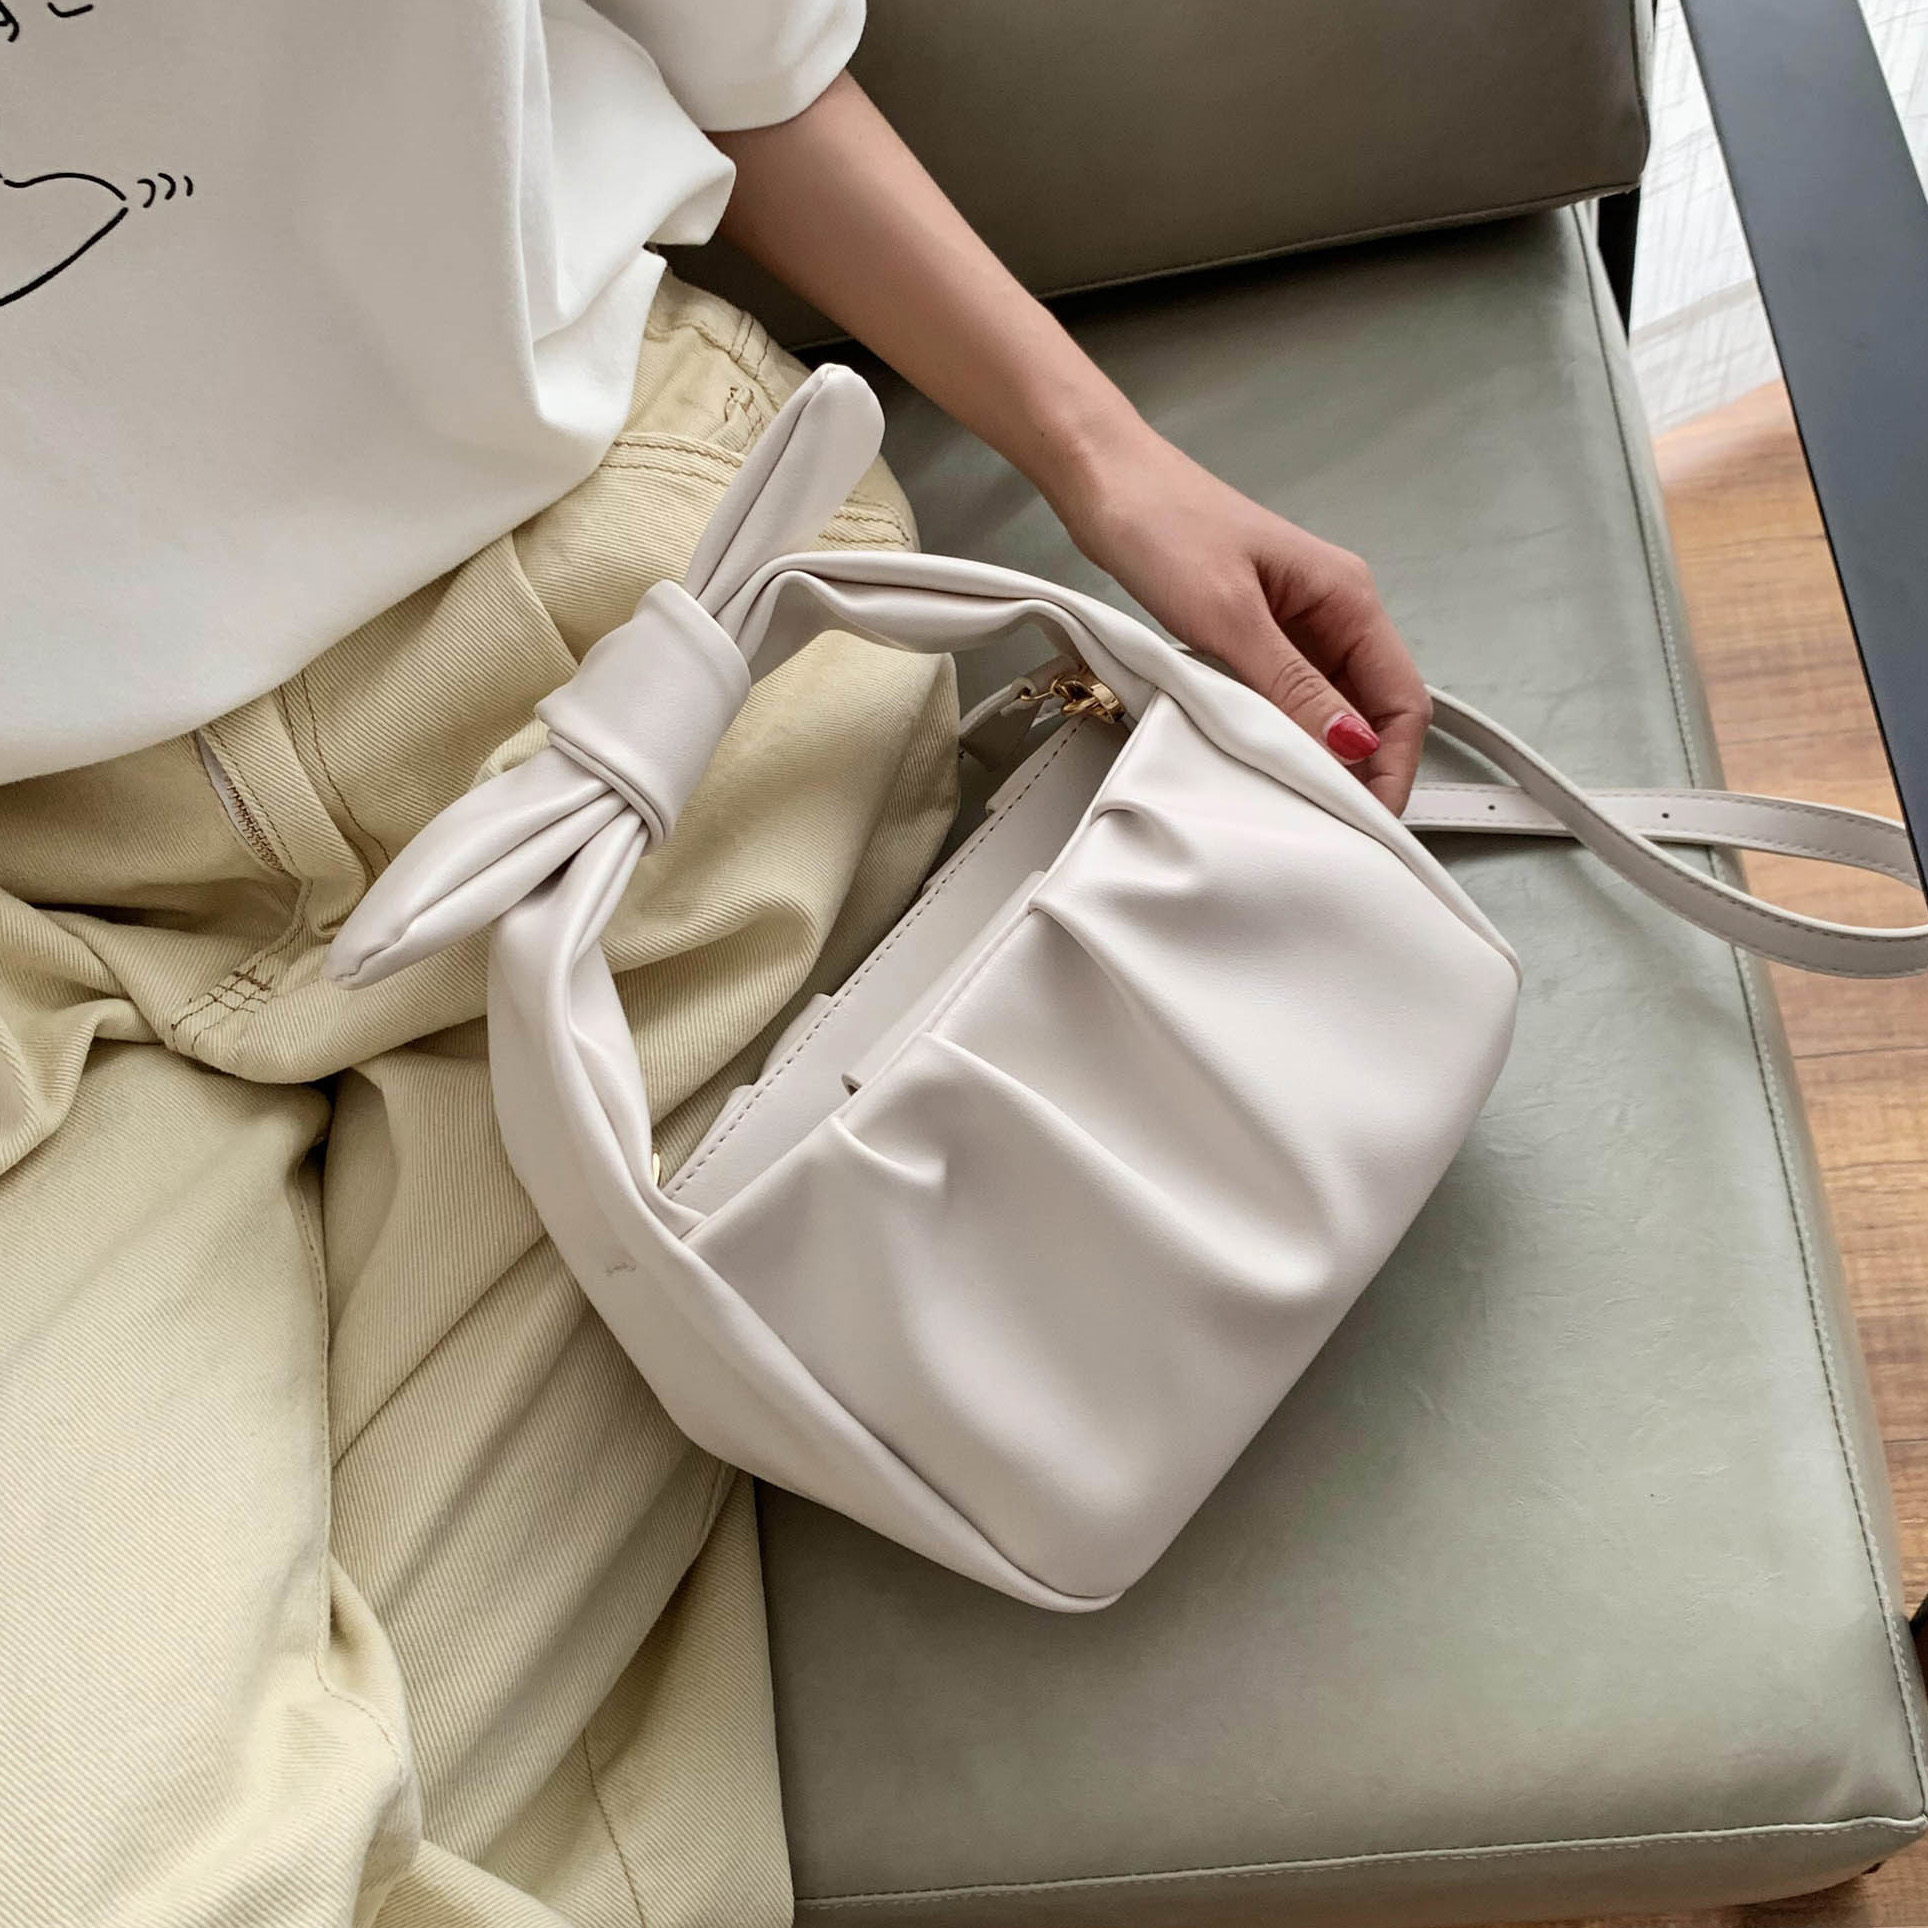 Small Tote Bags For Women 2020 Fashion Handbags Solid Color Summer Crossbody Shoulder Bag Lady PU Leather Cloud Bag